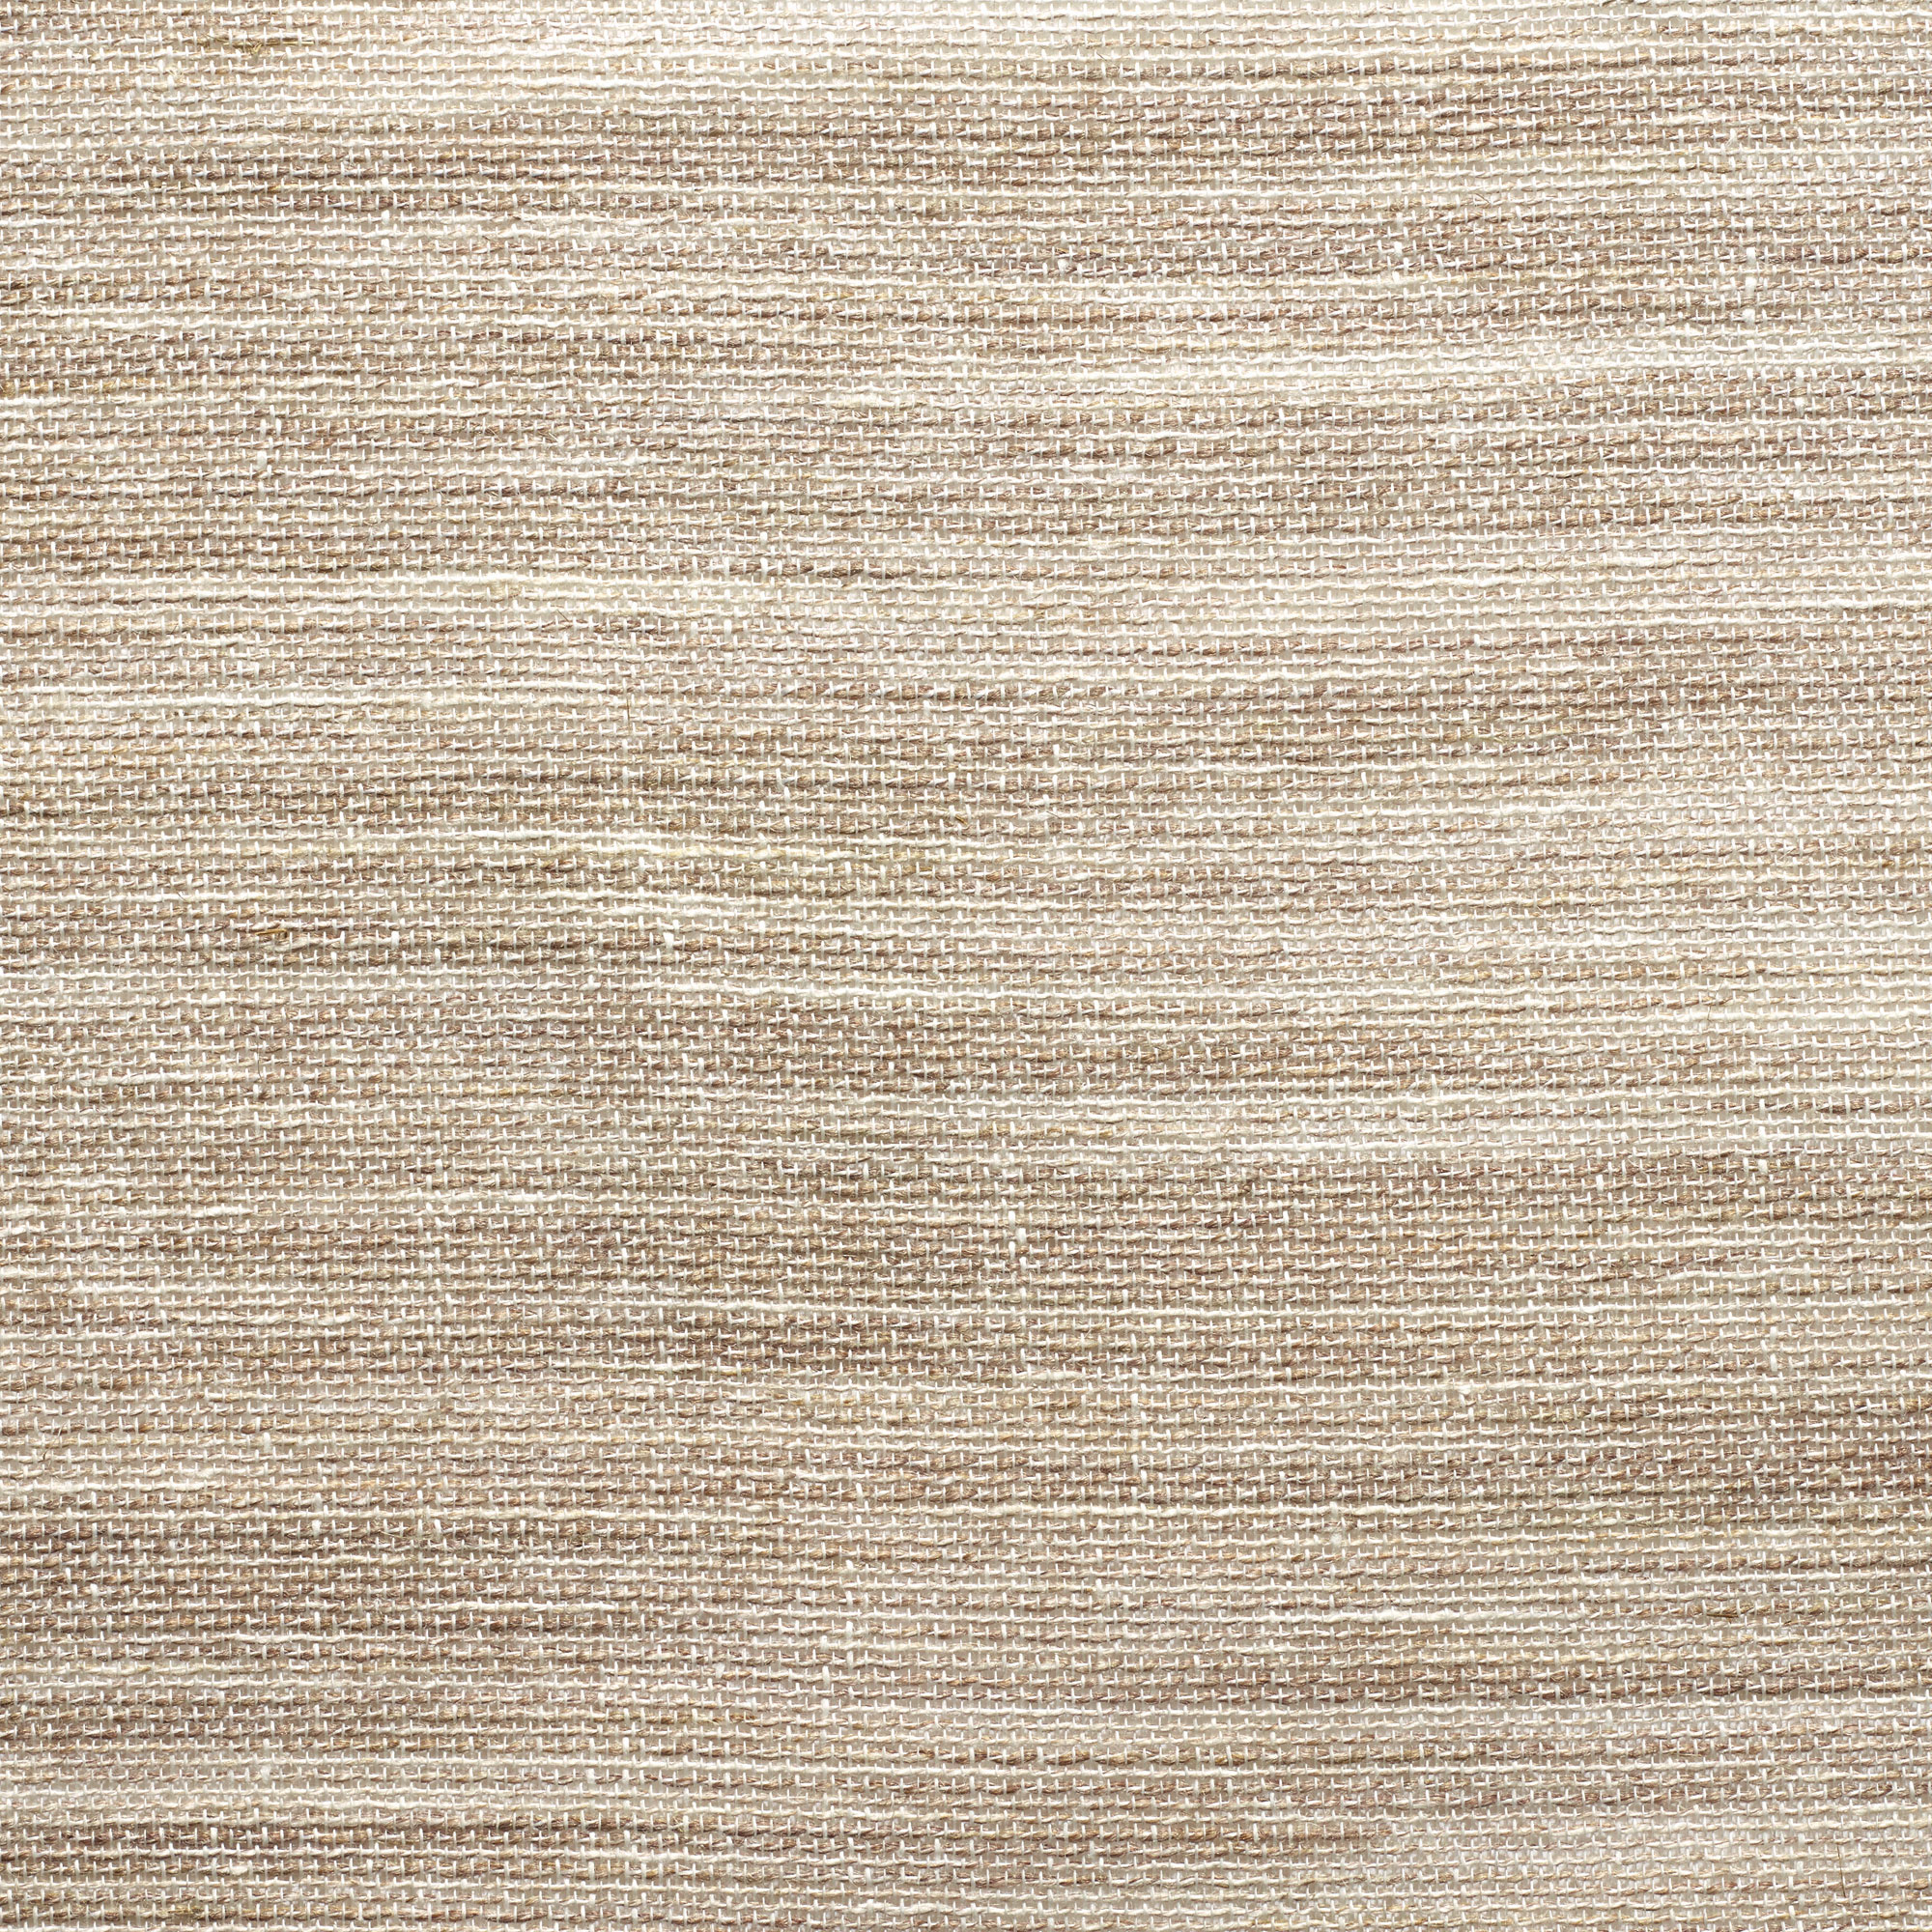 swatch-EW104-18-weathered-sandstone-web.jpg